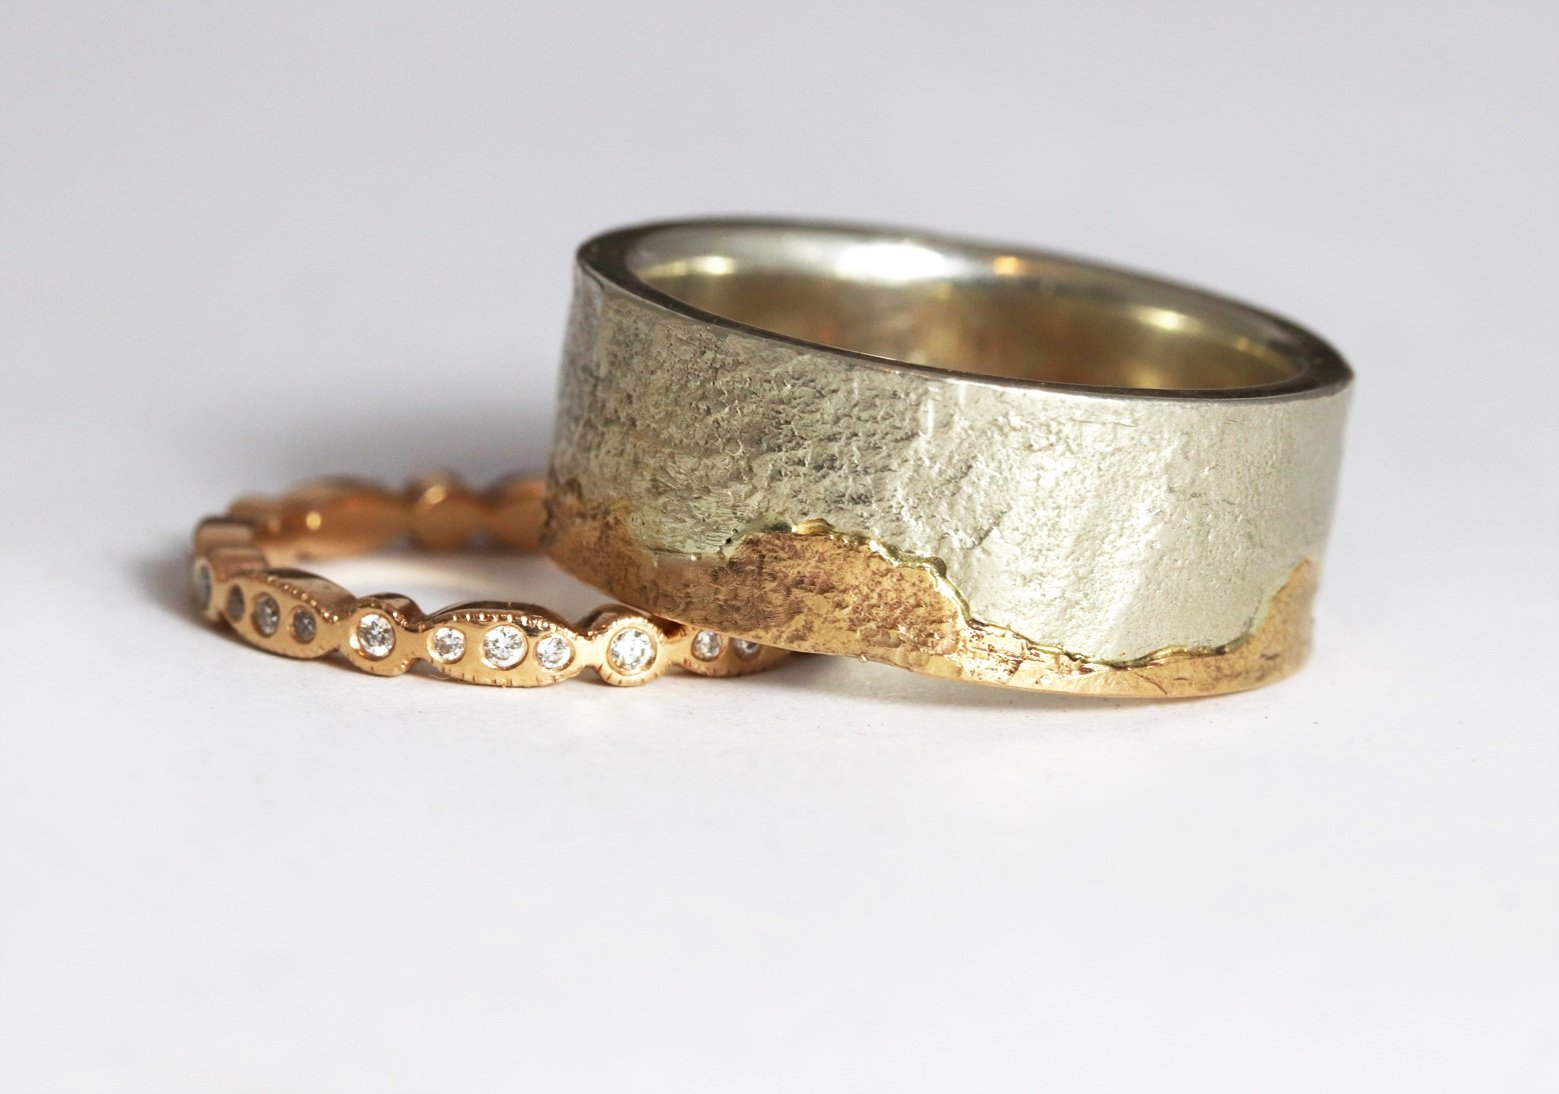 Textured gold wedding ring Zoe Pook